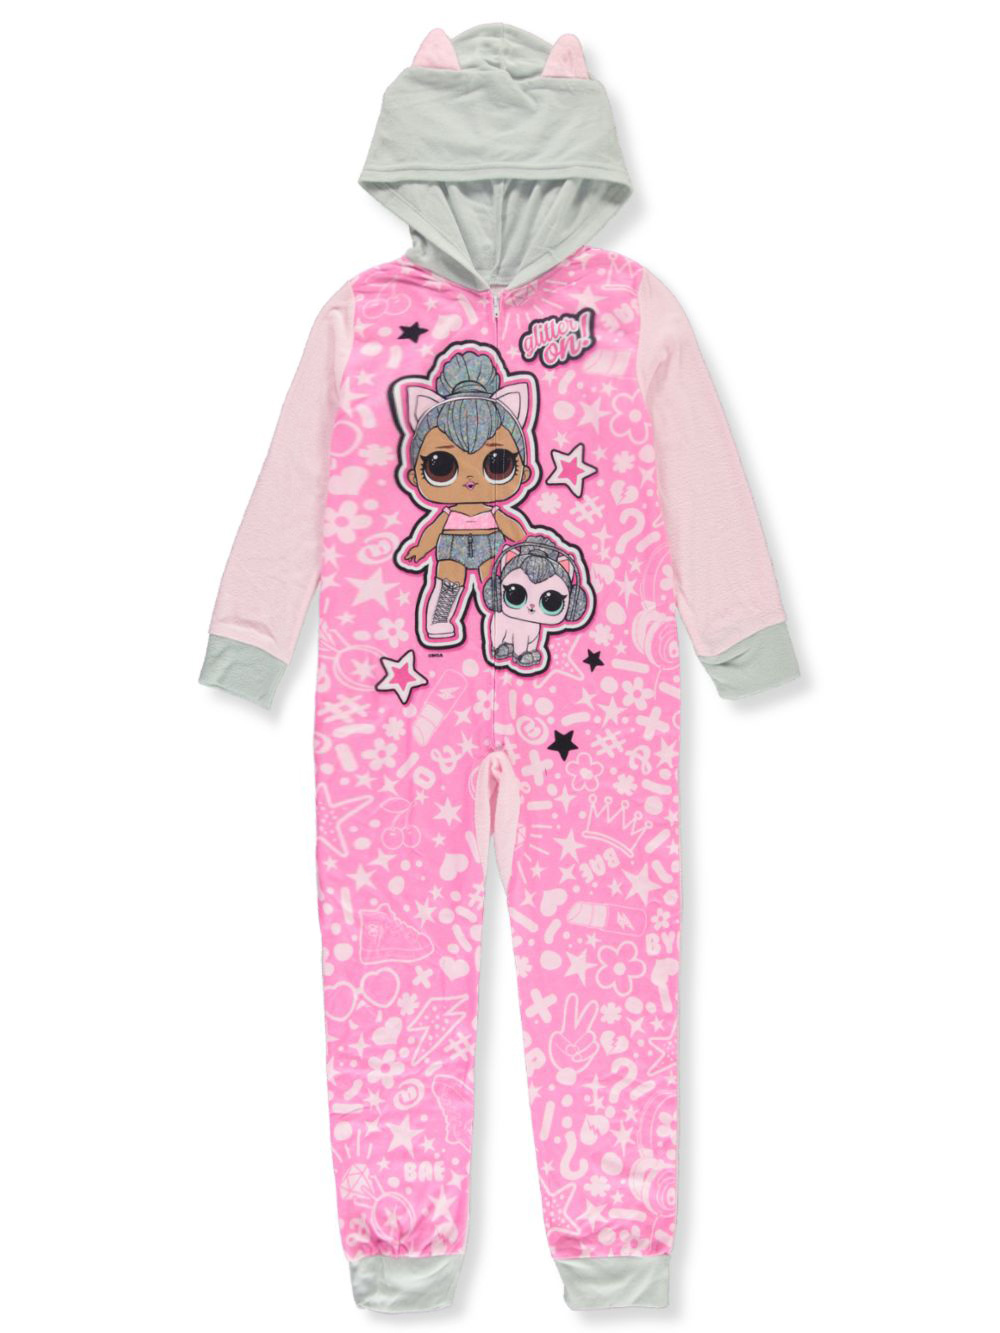 Glitter On! Hooded 1-Piece Pajama Suit